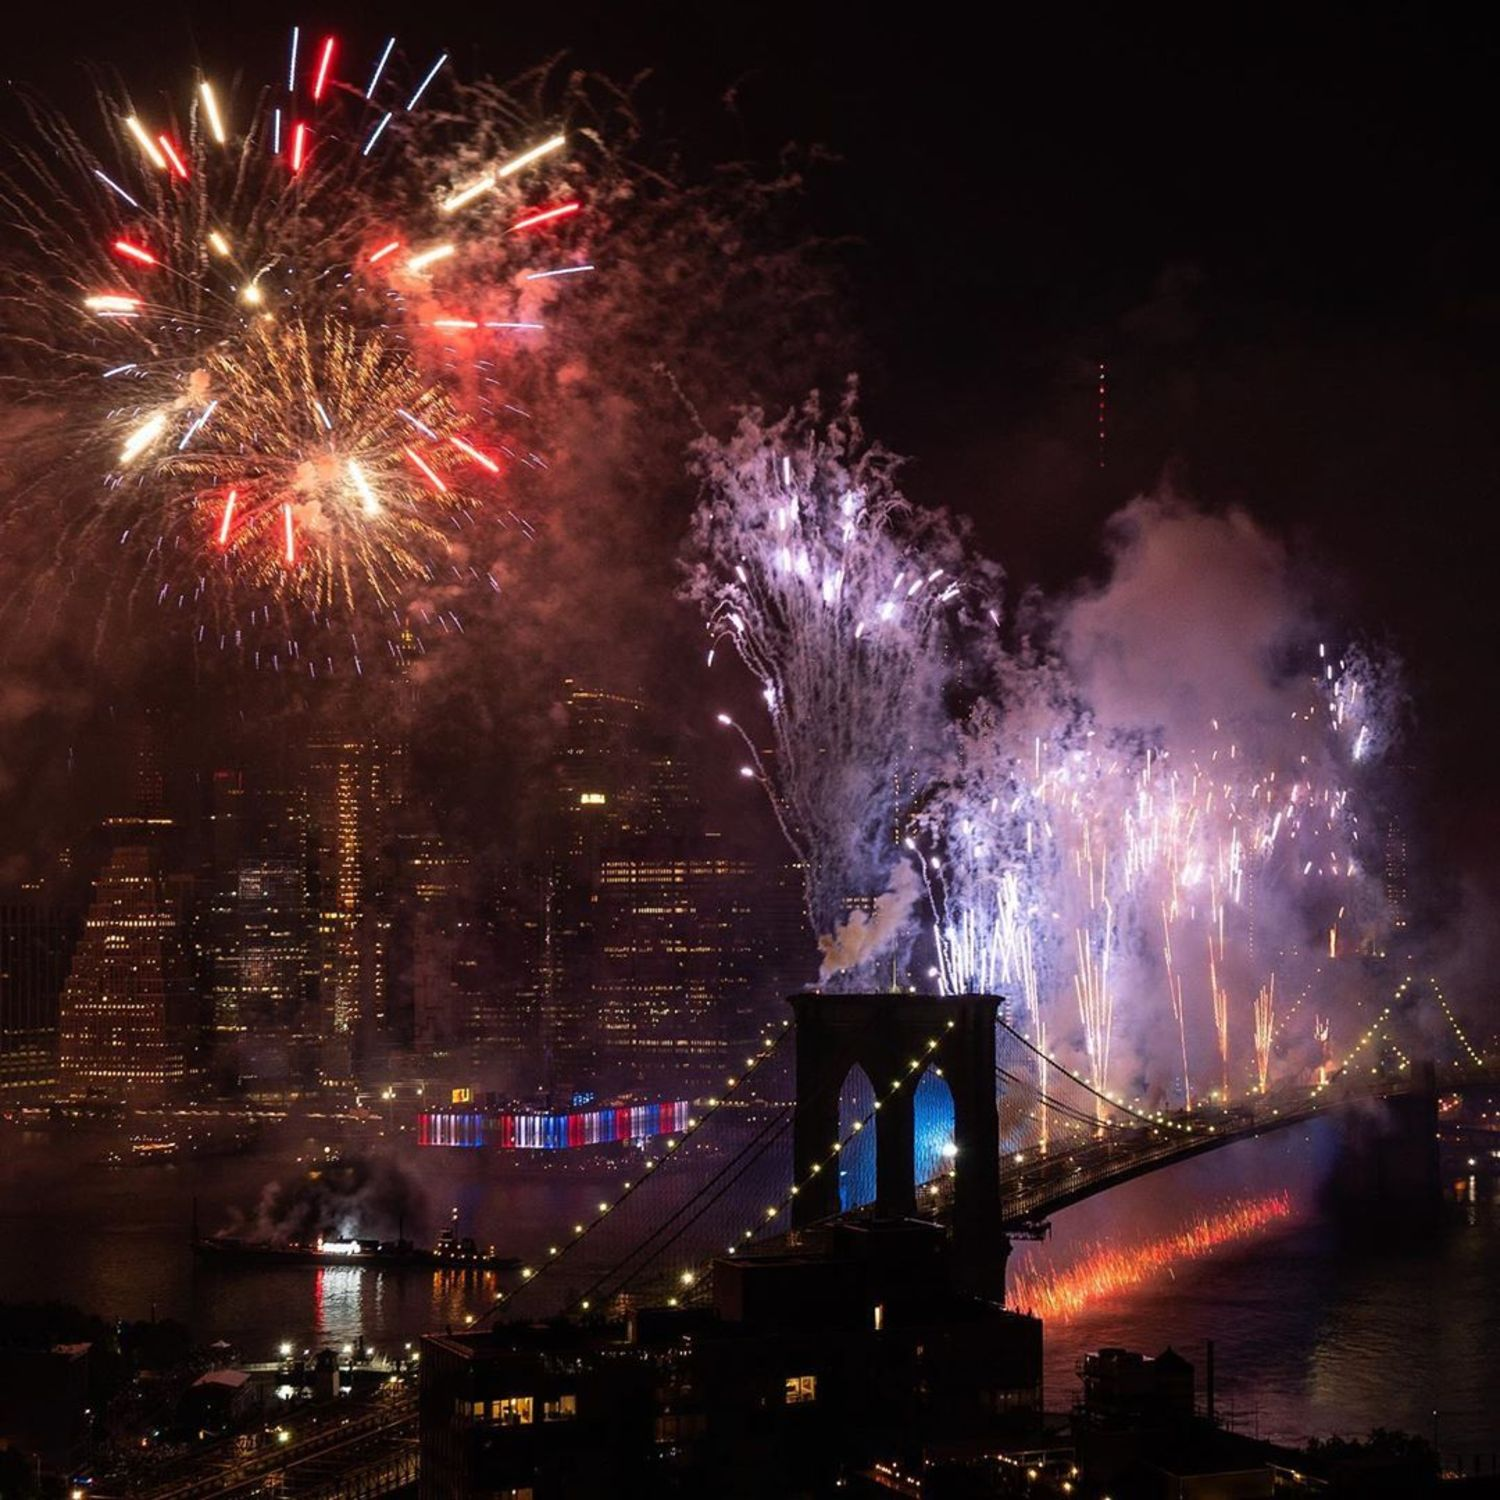 Ok, so thinking it's time to start shopping @macys again!!! 🛍🎉 If you saw the fireworks in nyc last night-  you agree, right?! 🤷♀️😜 Thank you fam for lighting me up in the best way possible!! 💗🙏💗 WOW, what you did on the east river was mind blowing!!! 🙌 Hope all my fam had a super fun and safe 4th... Enjoy the rest of the holiday wknd!!! 🇺🇸🗽🥂🎂🌈 ========================= www.nadiablockphotography.com =========================